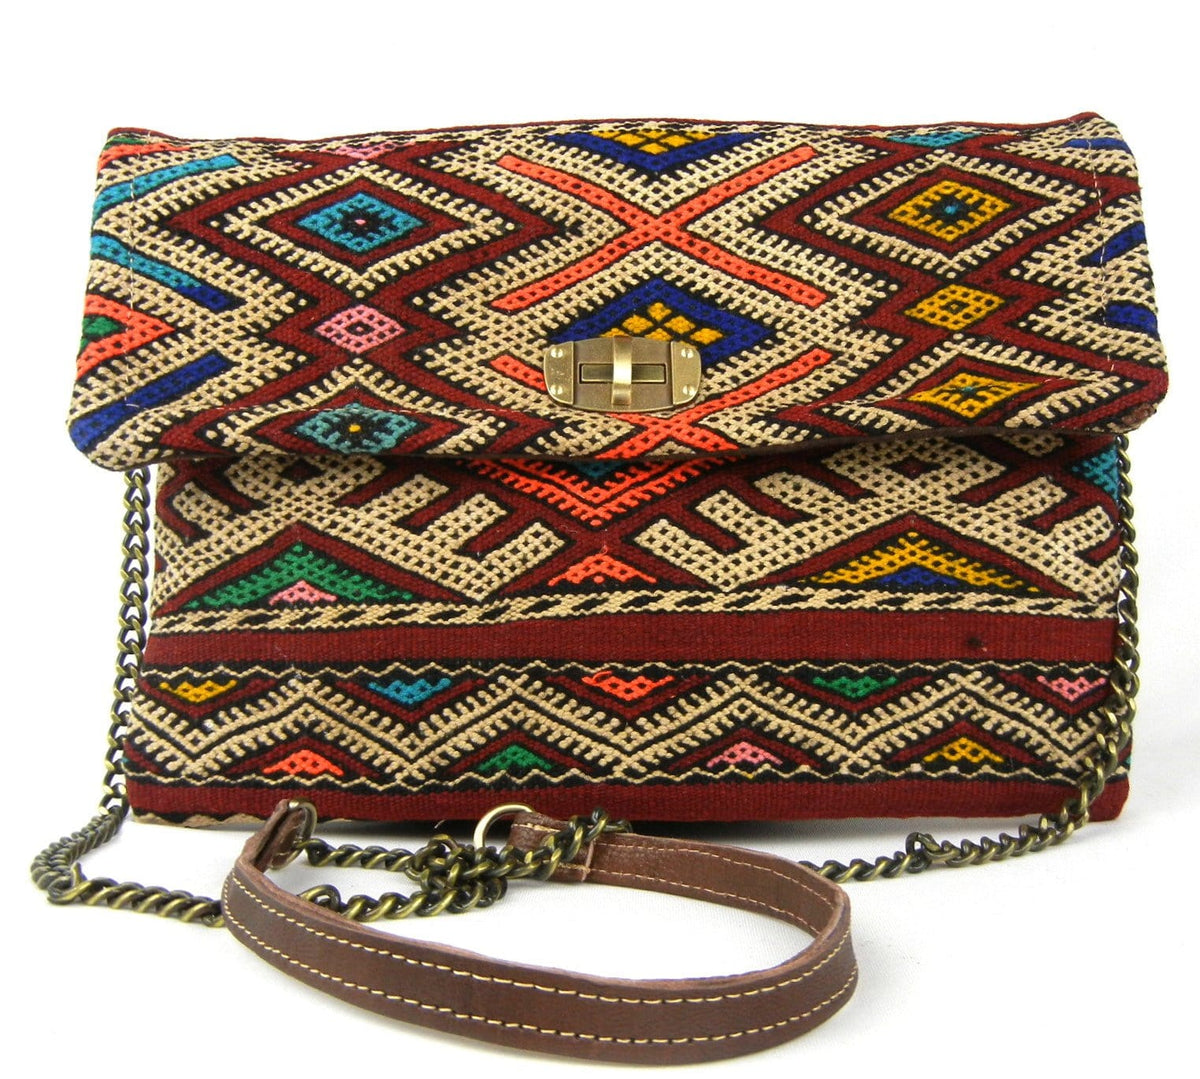 Kilim Clutch - Chainlink Crossbody #12